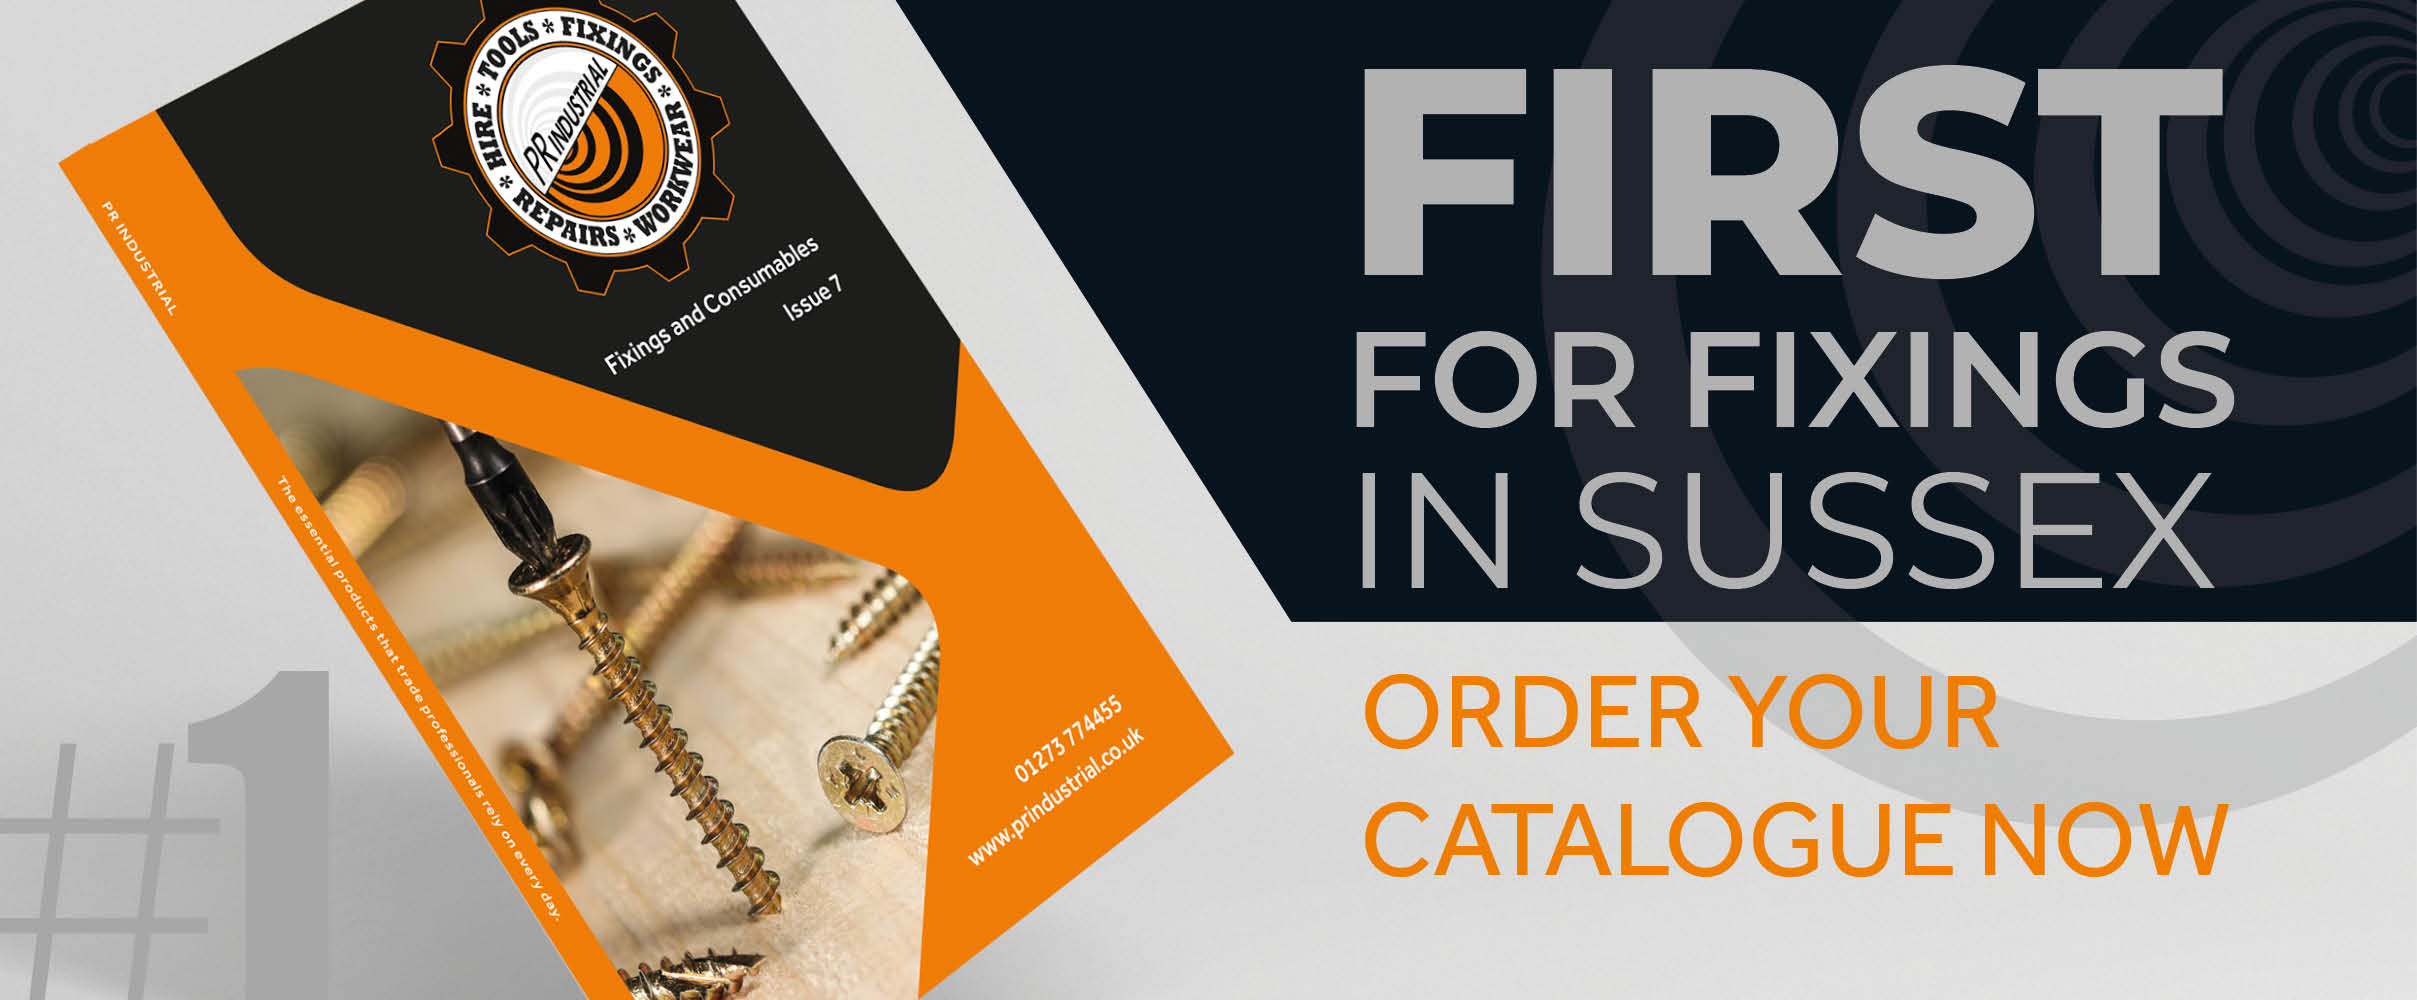 First for fixings - order your catalogue